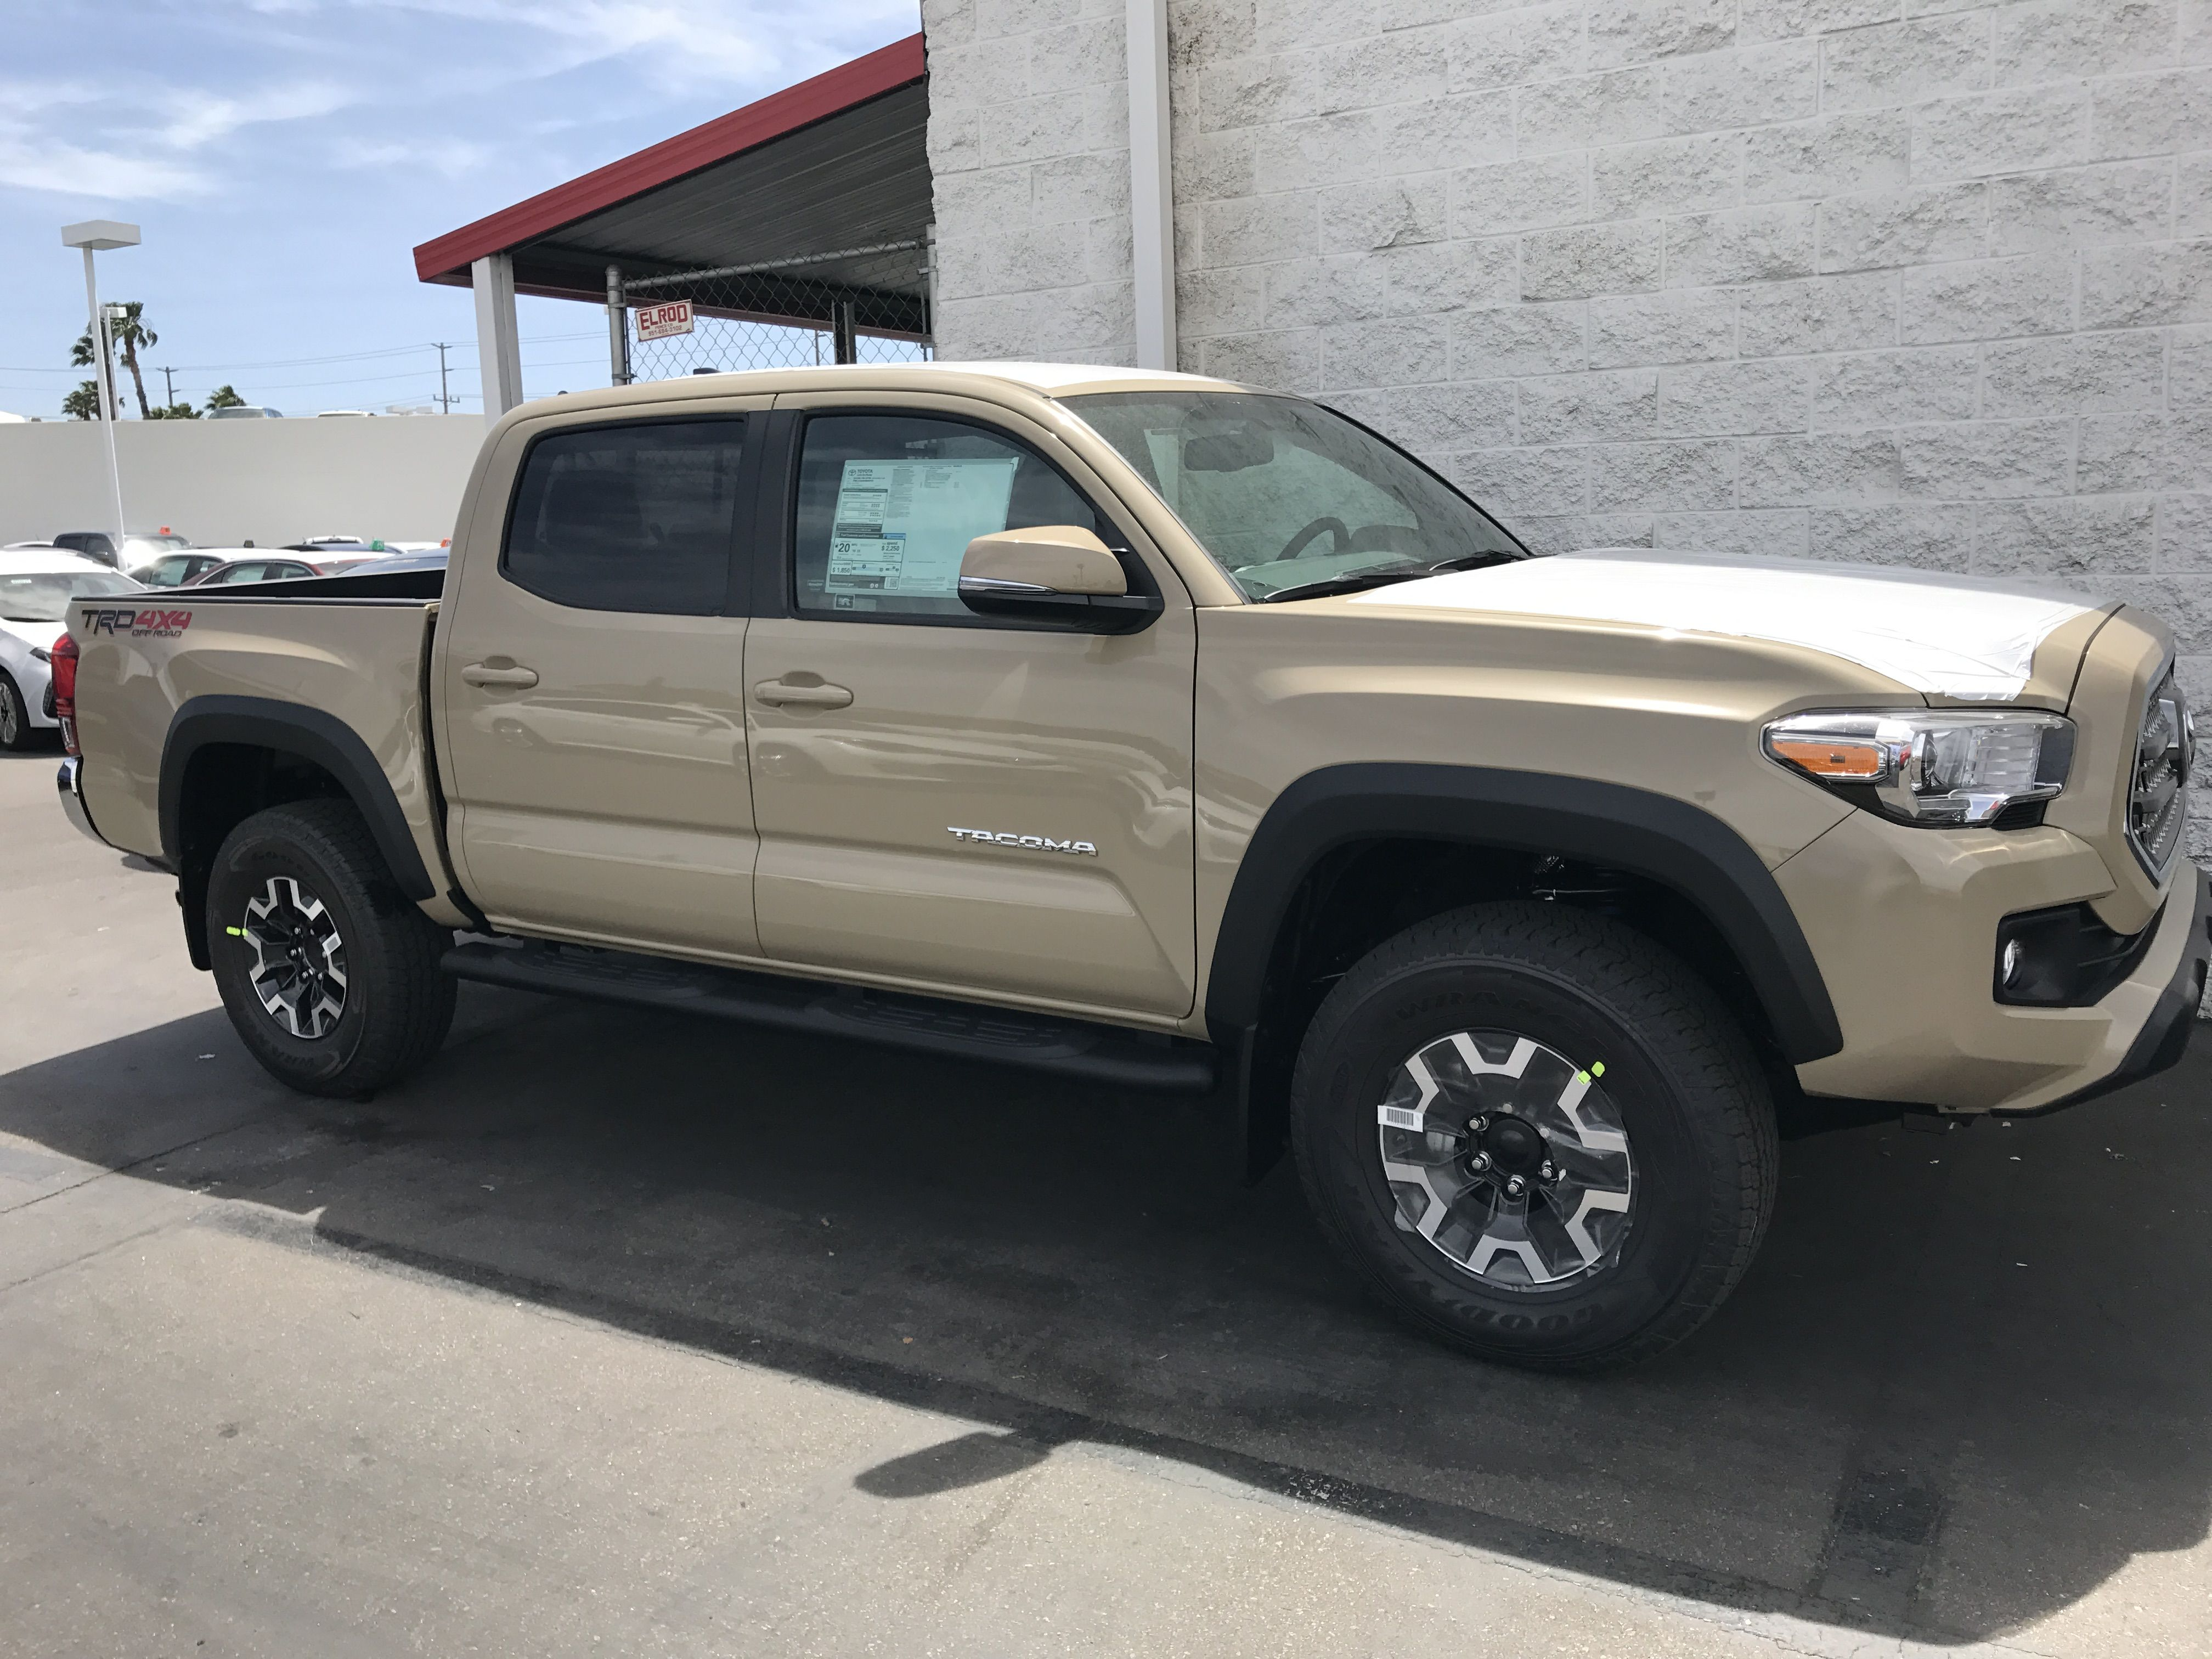 Quicksand Double Cab 4x4 Trd Off Road Tacoma